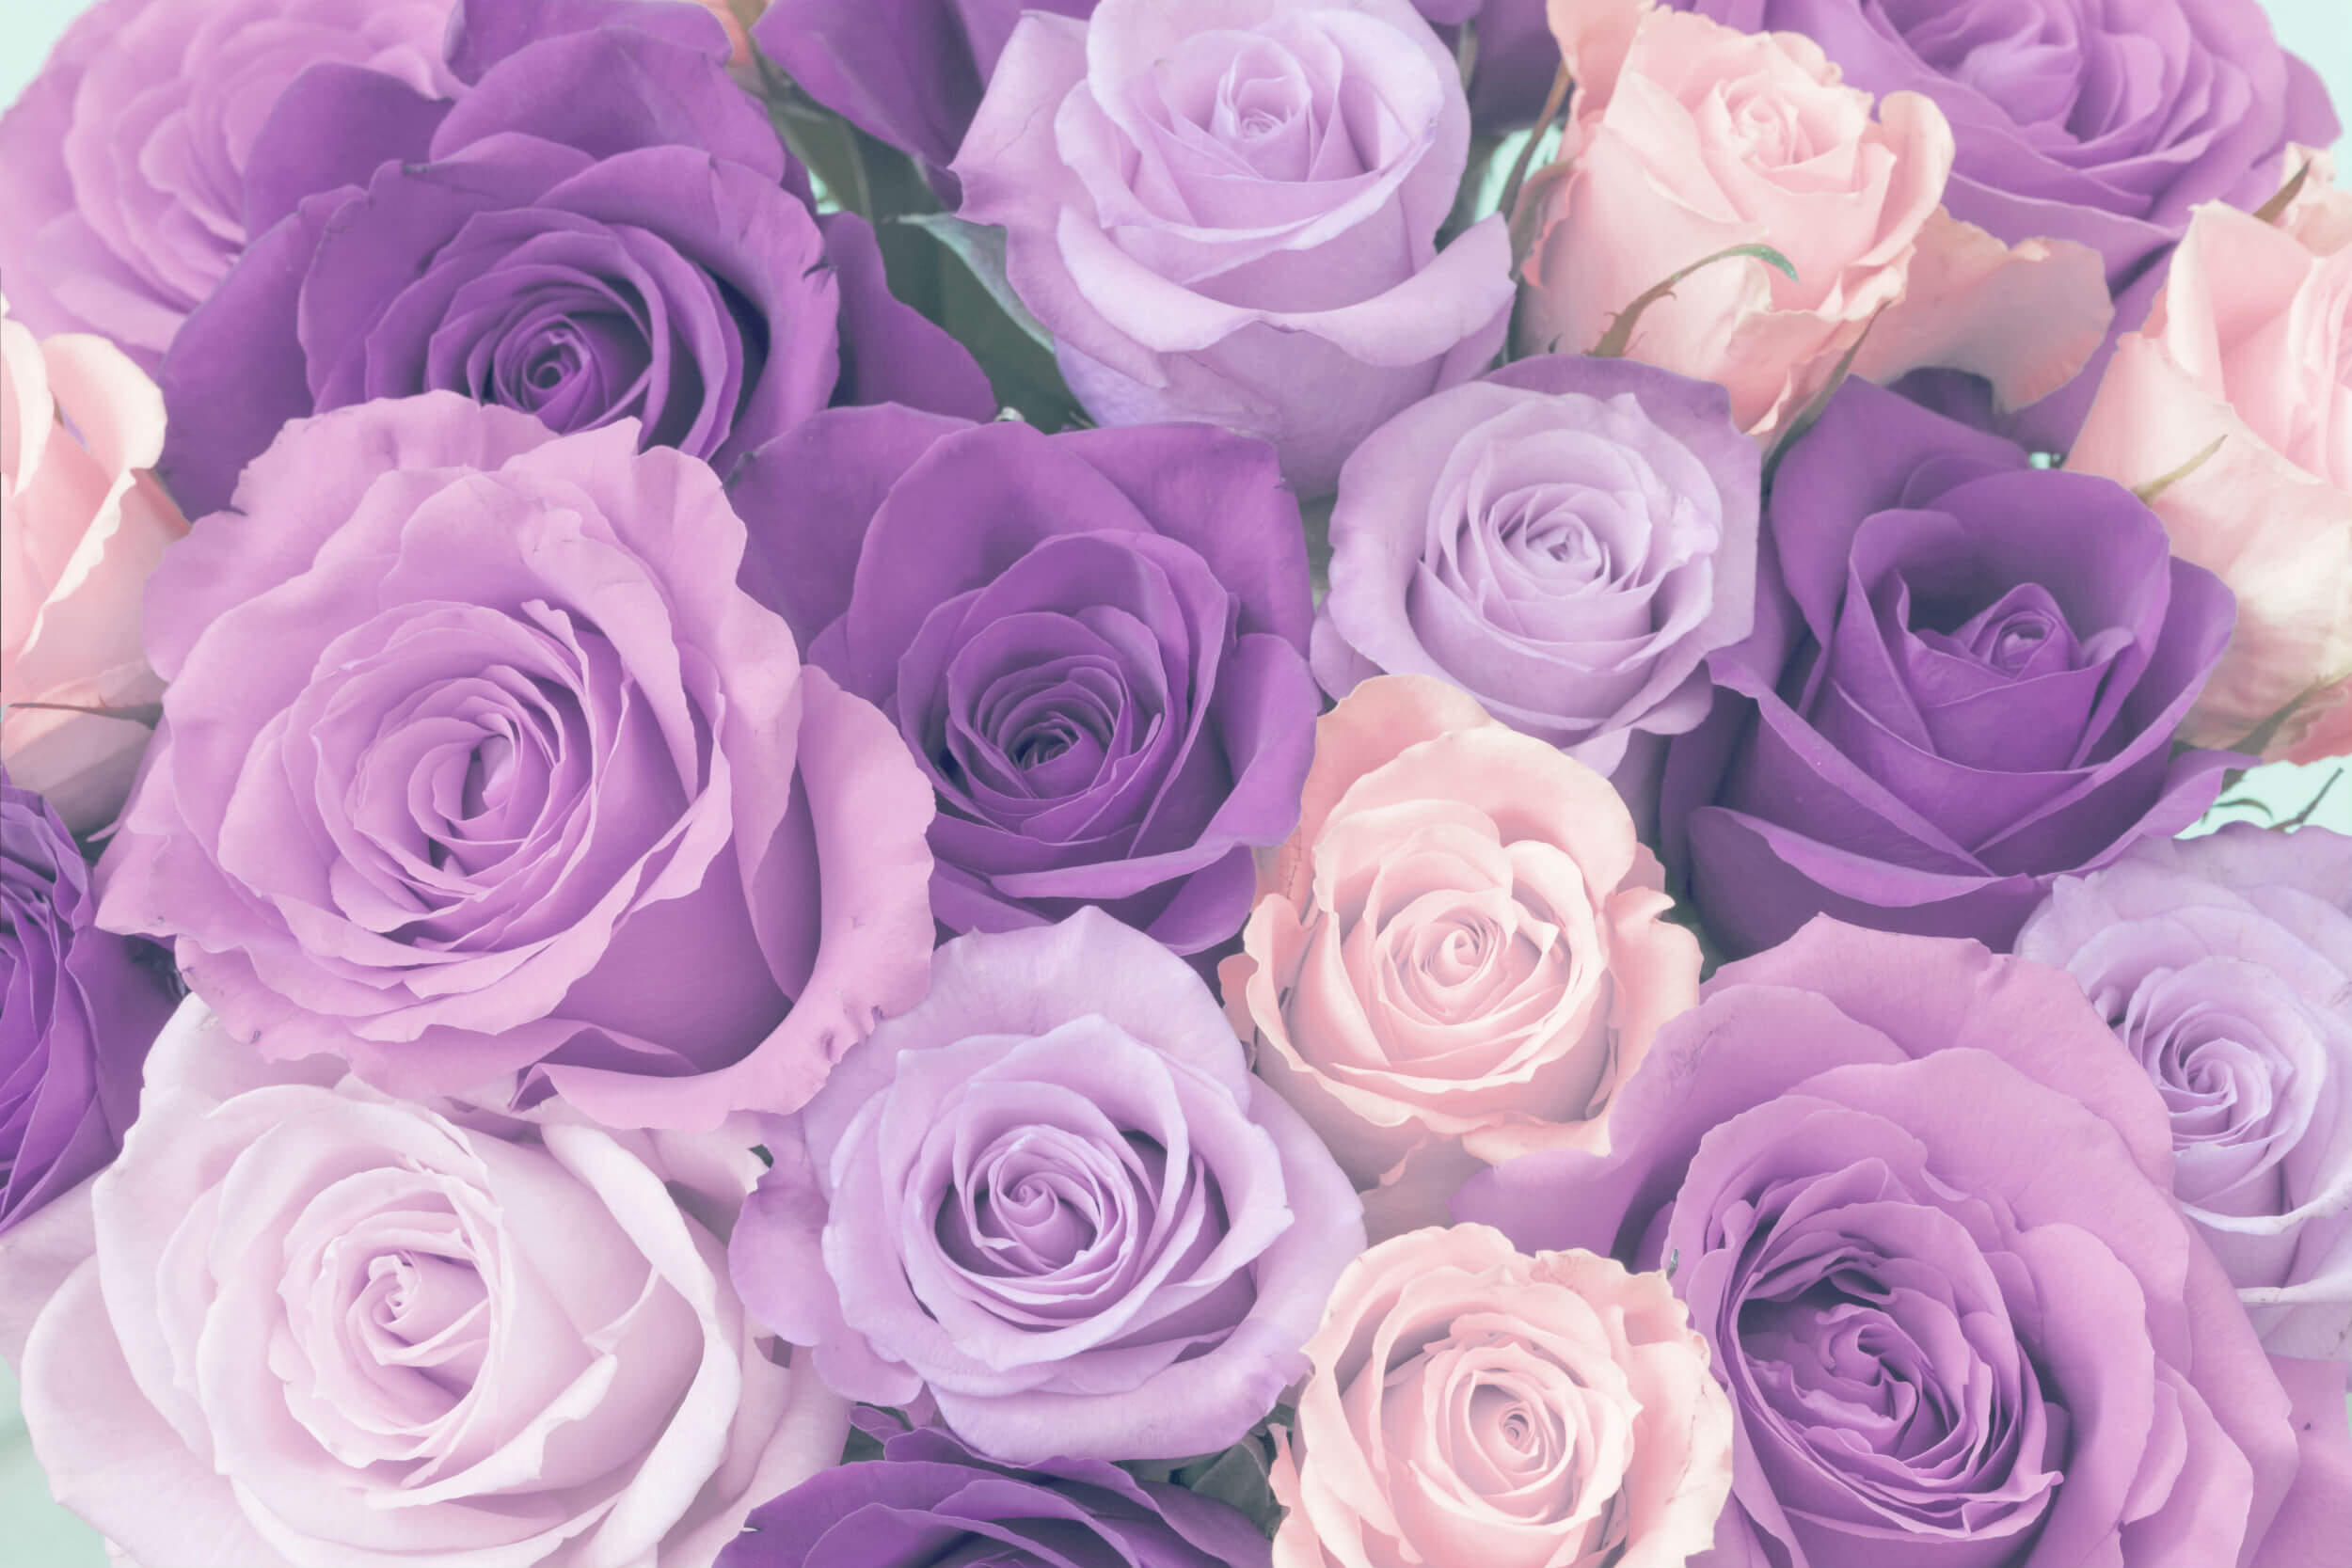 ultimate purple rose meaning